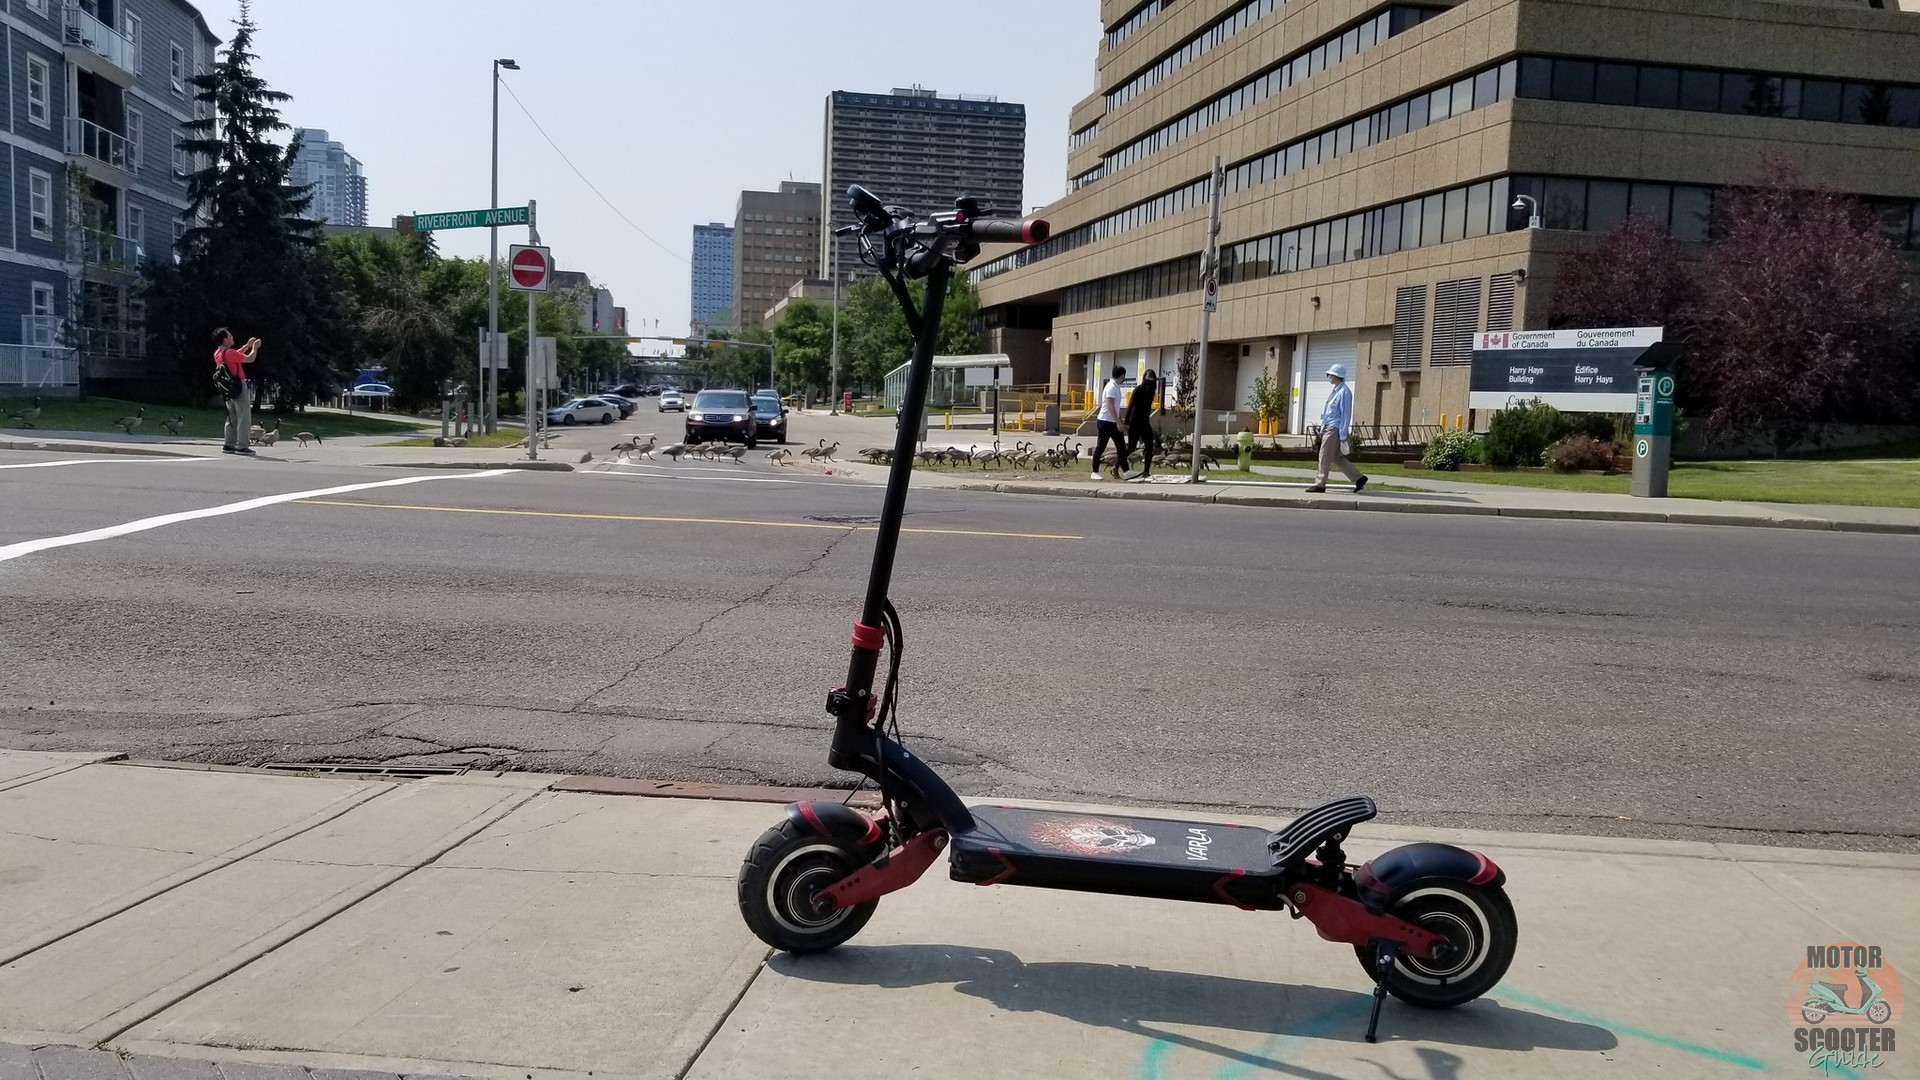 Varla Eagle One scooter on the sidewalk in downtown Calgary